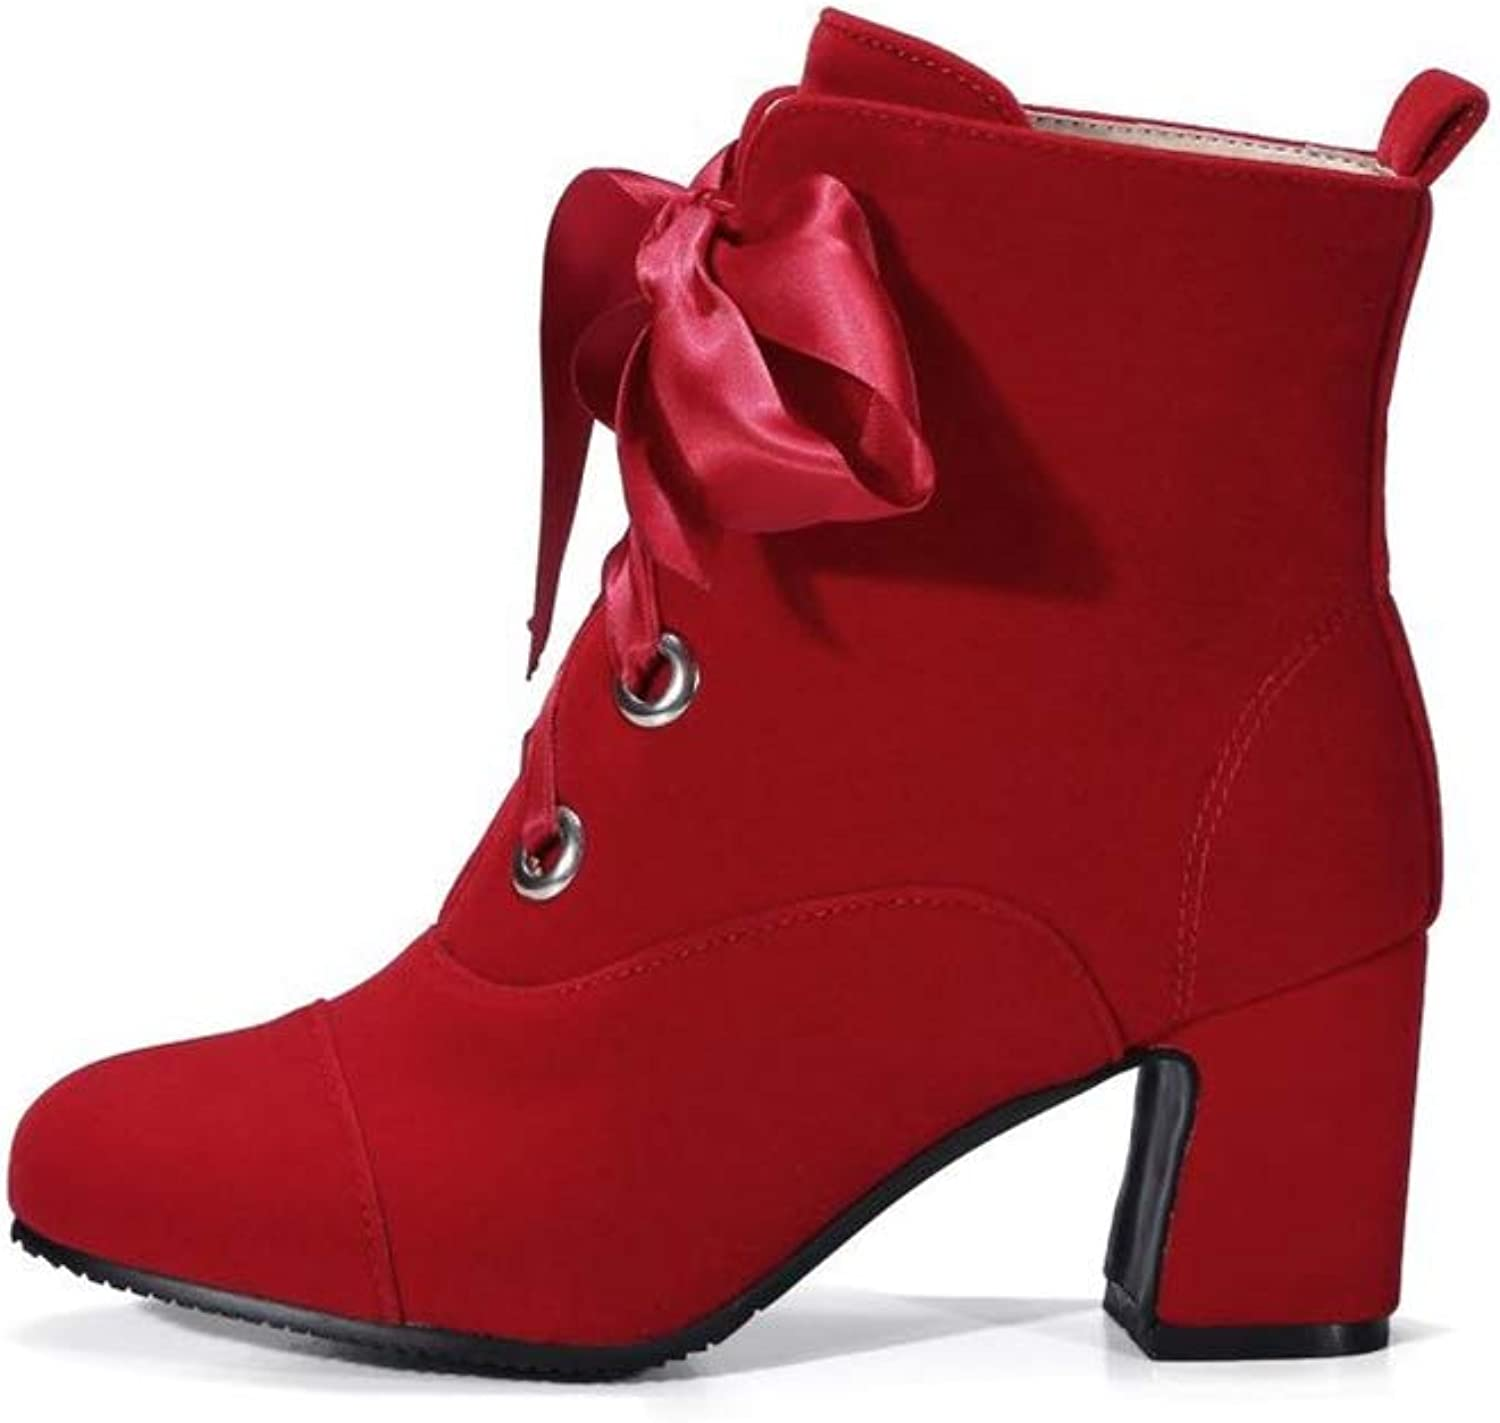 SUNNY Store Women's Winter Comfort Stacked Chunky Heel Ankle Booties